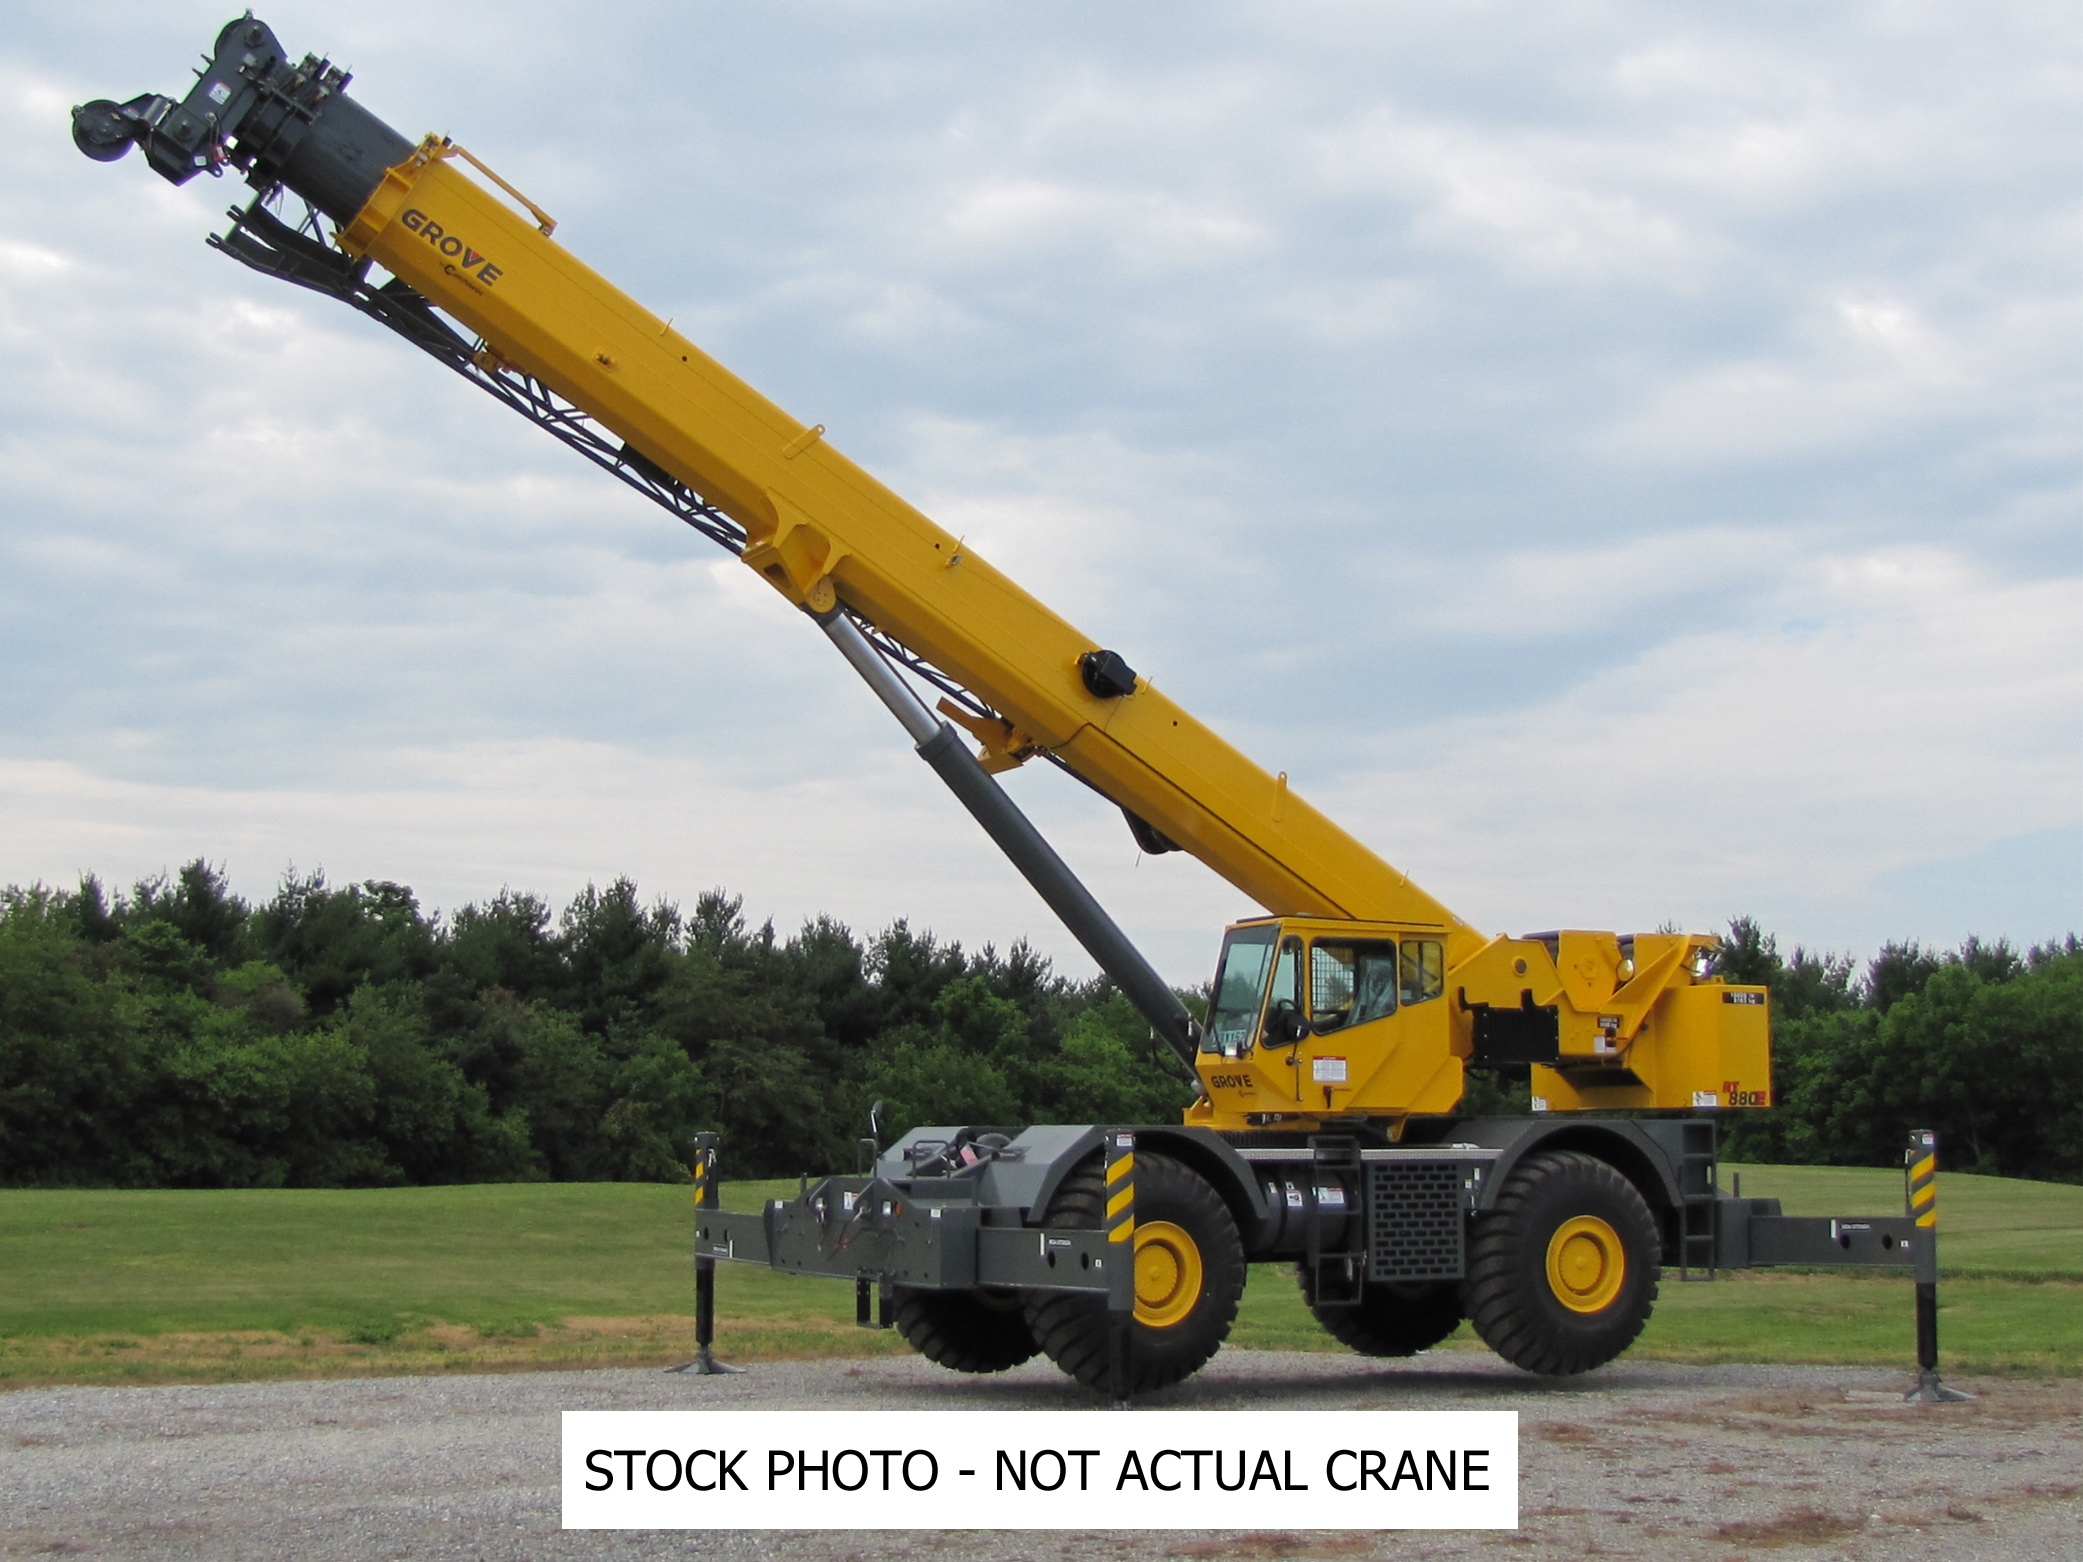 2010 Grove RT880E - 80 Ton Rough Terrain Crane